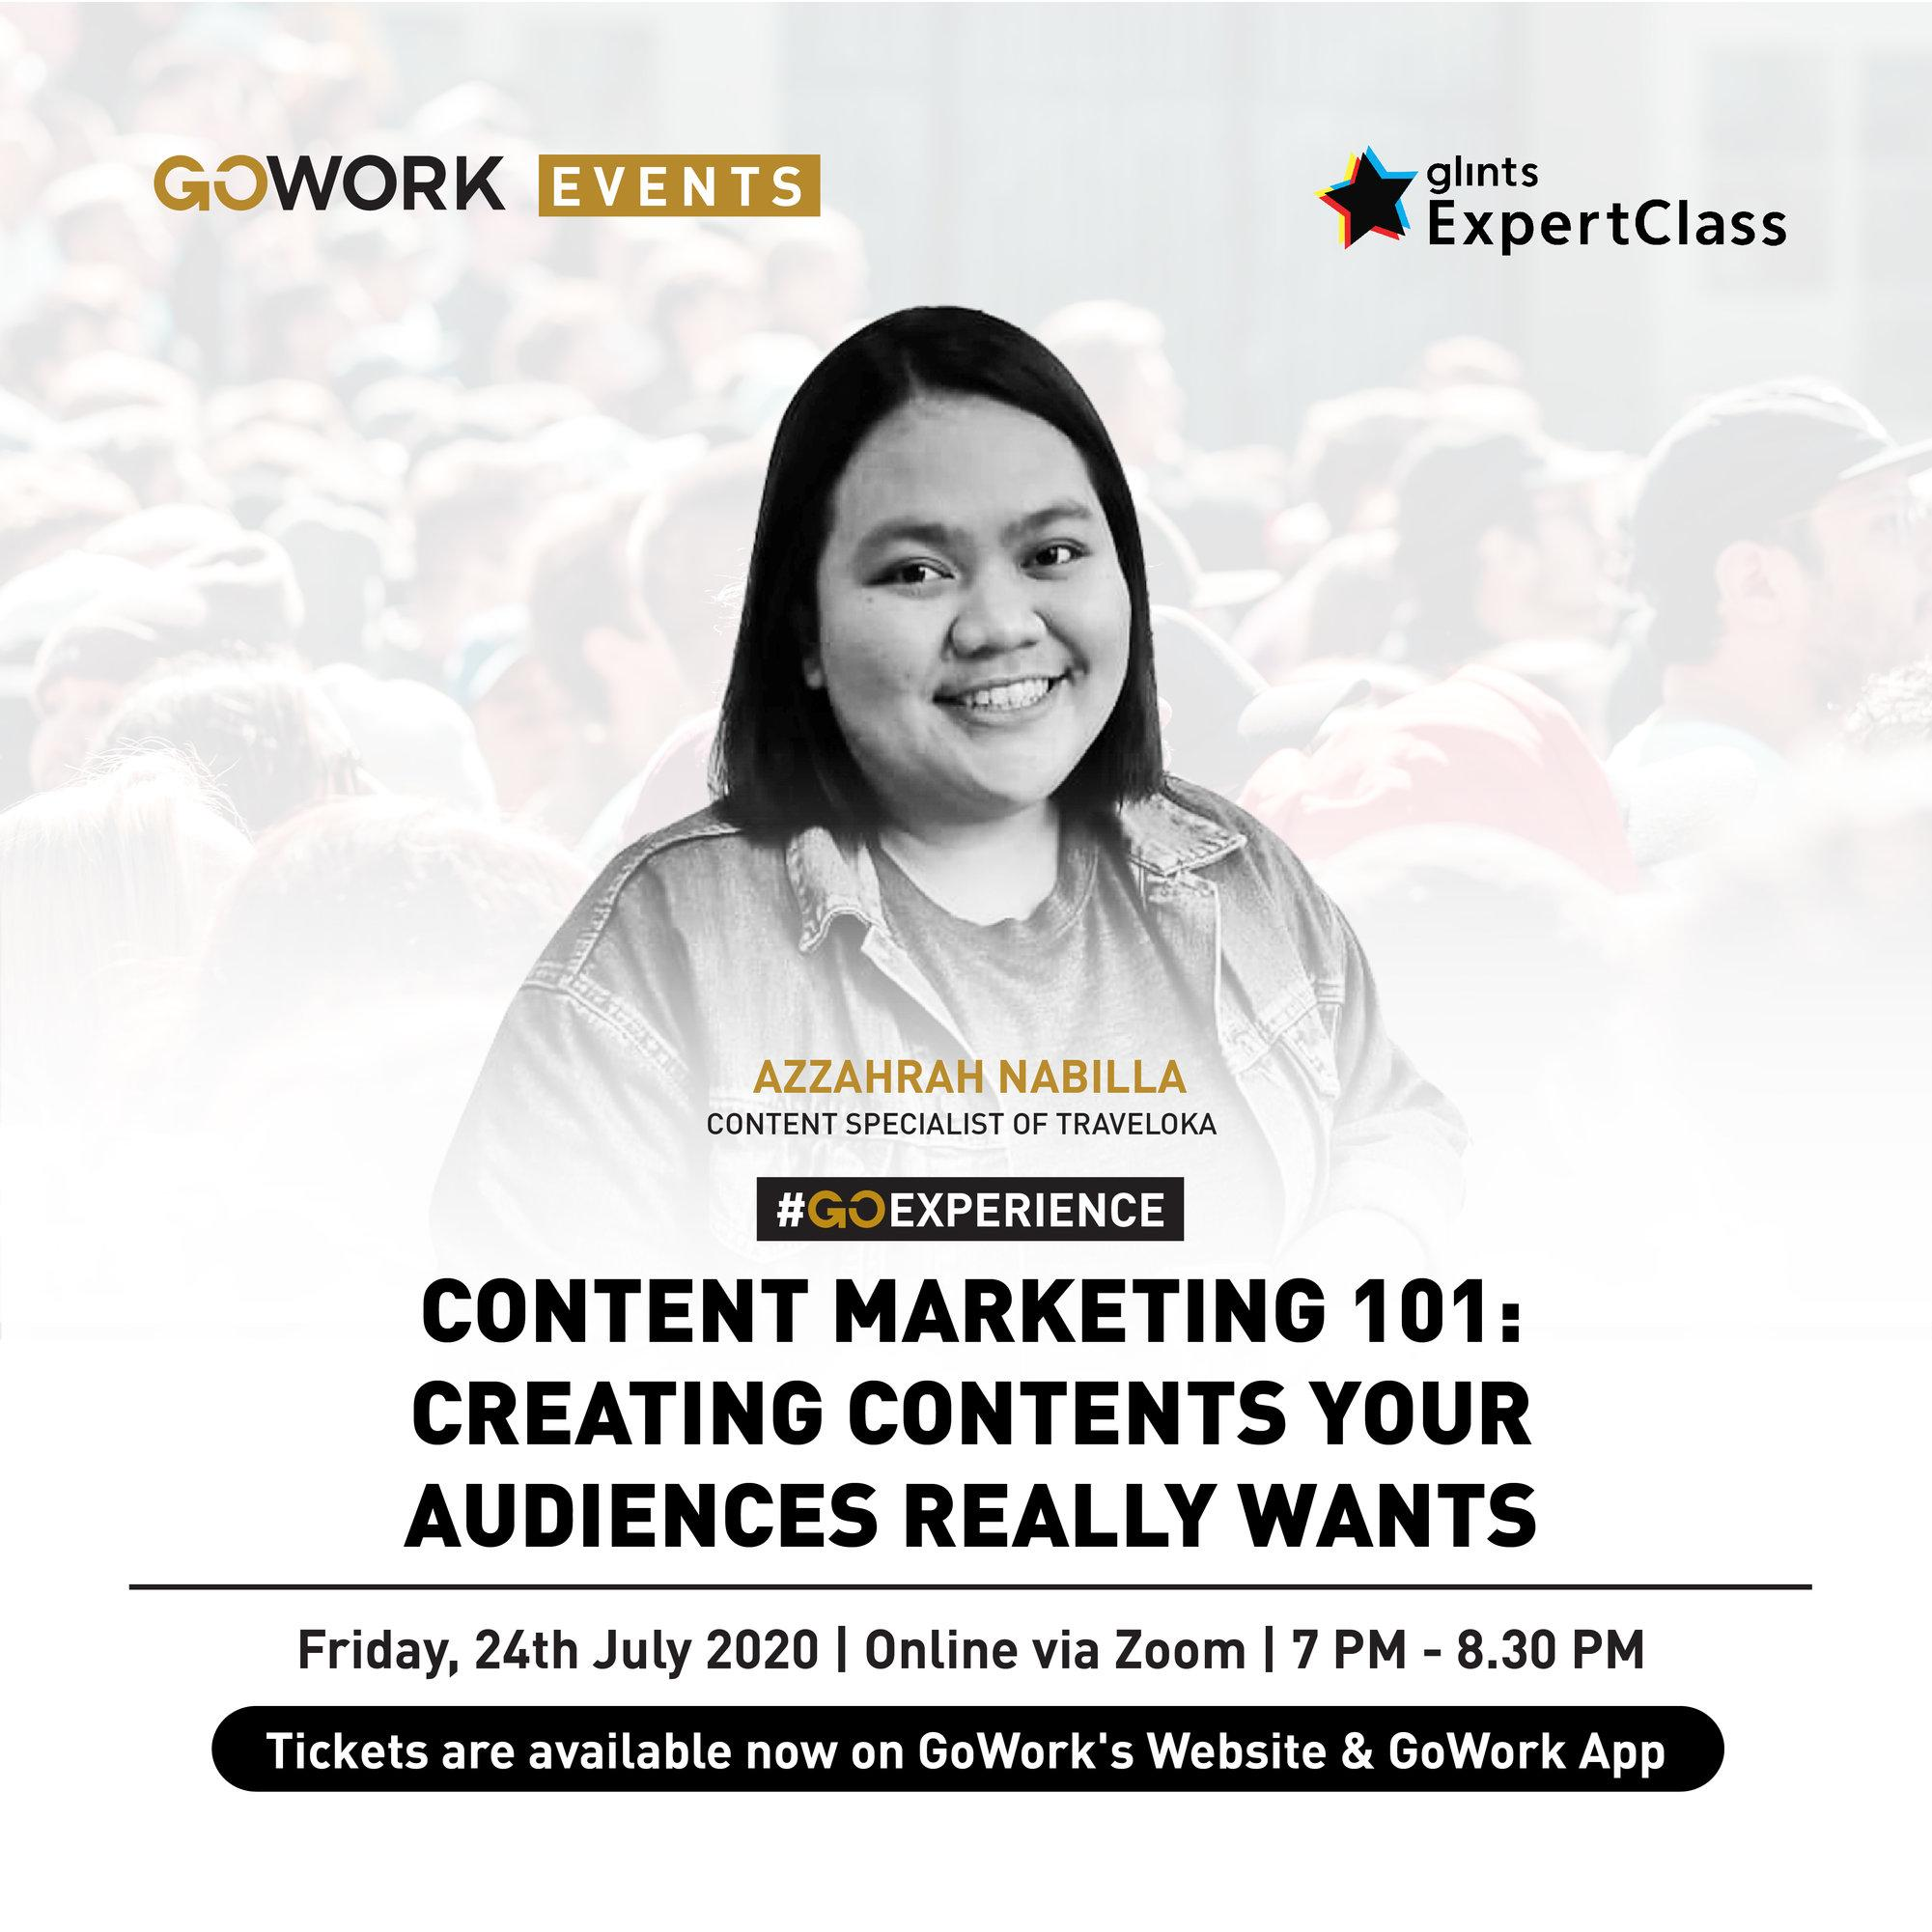 Content Marketing 101: Creating Contents Your Audiences Really Want